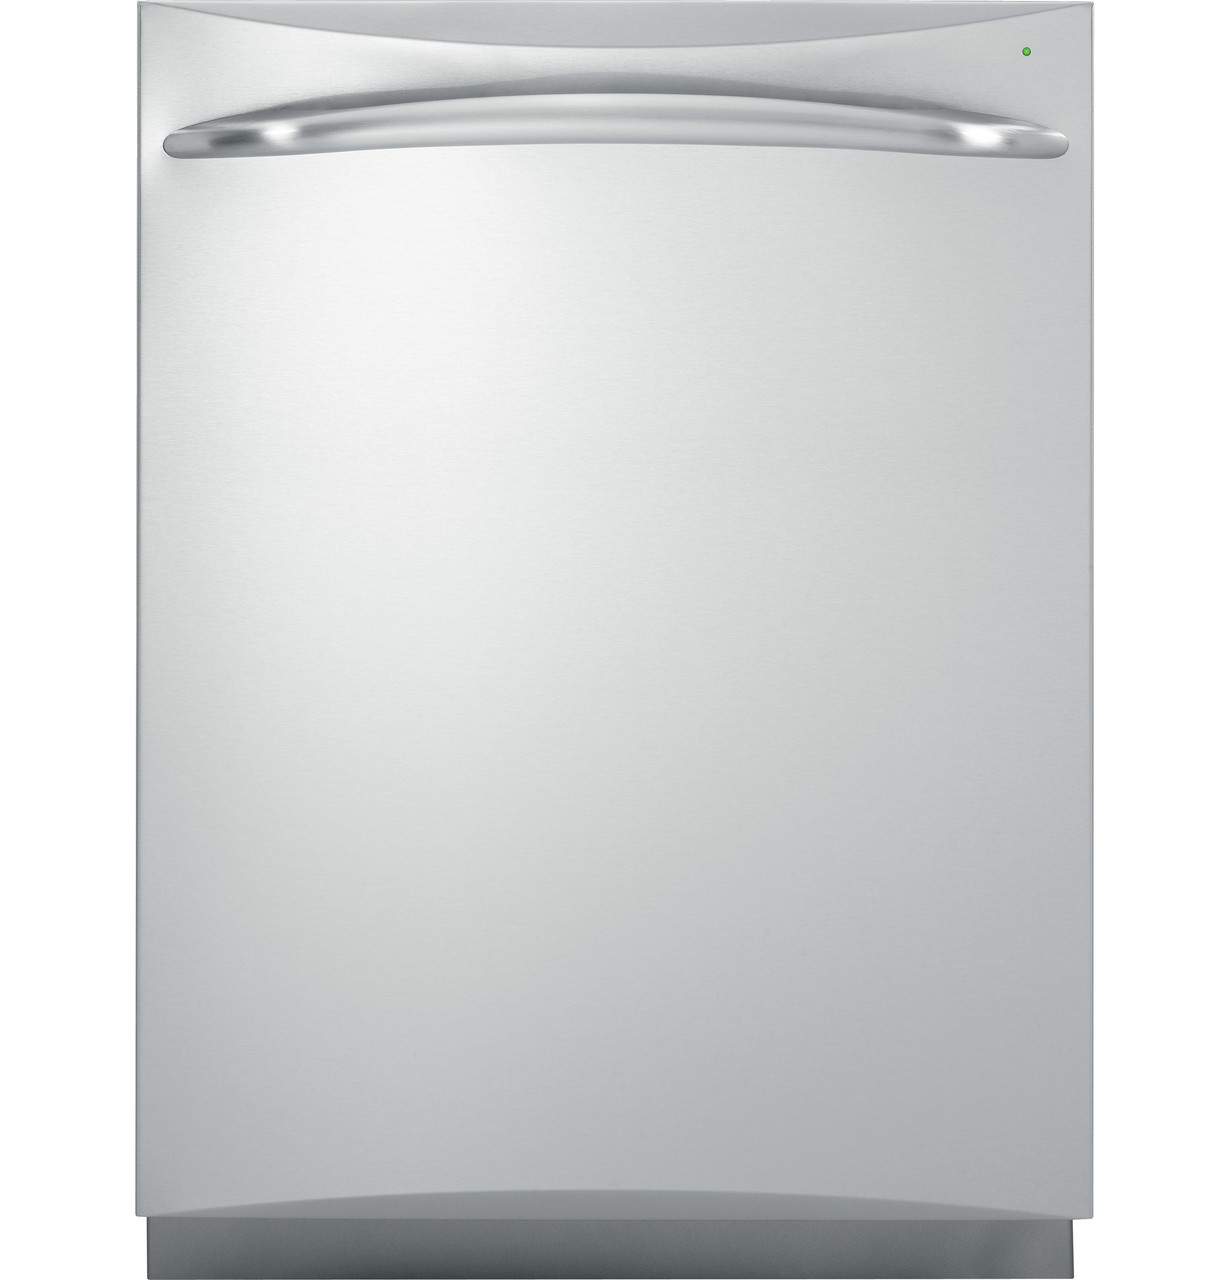 ge profile stainless interior built in dishwasher with hidden controls pdwt280vss